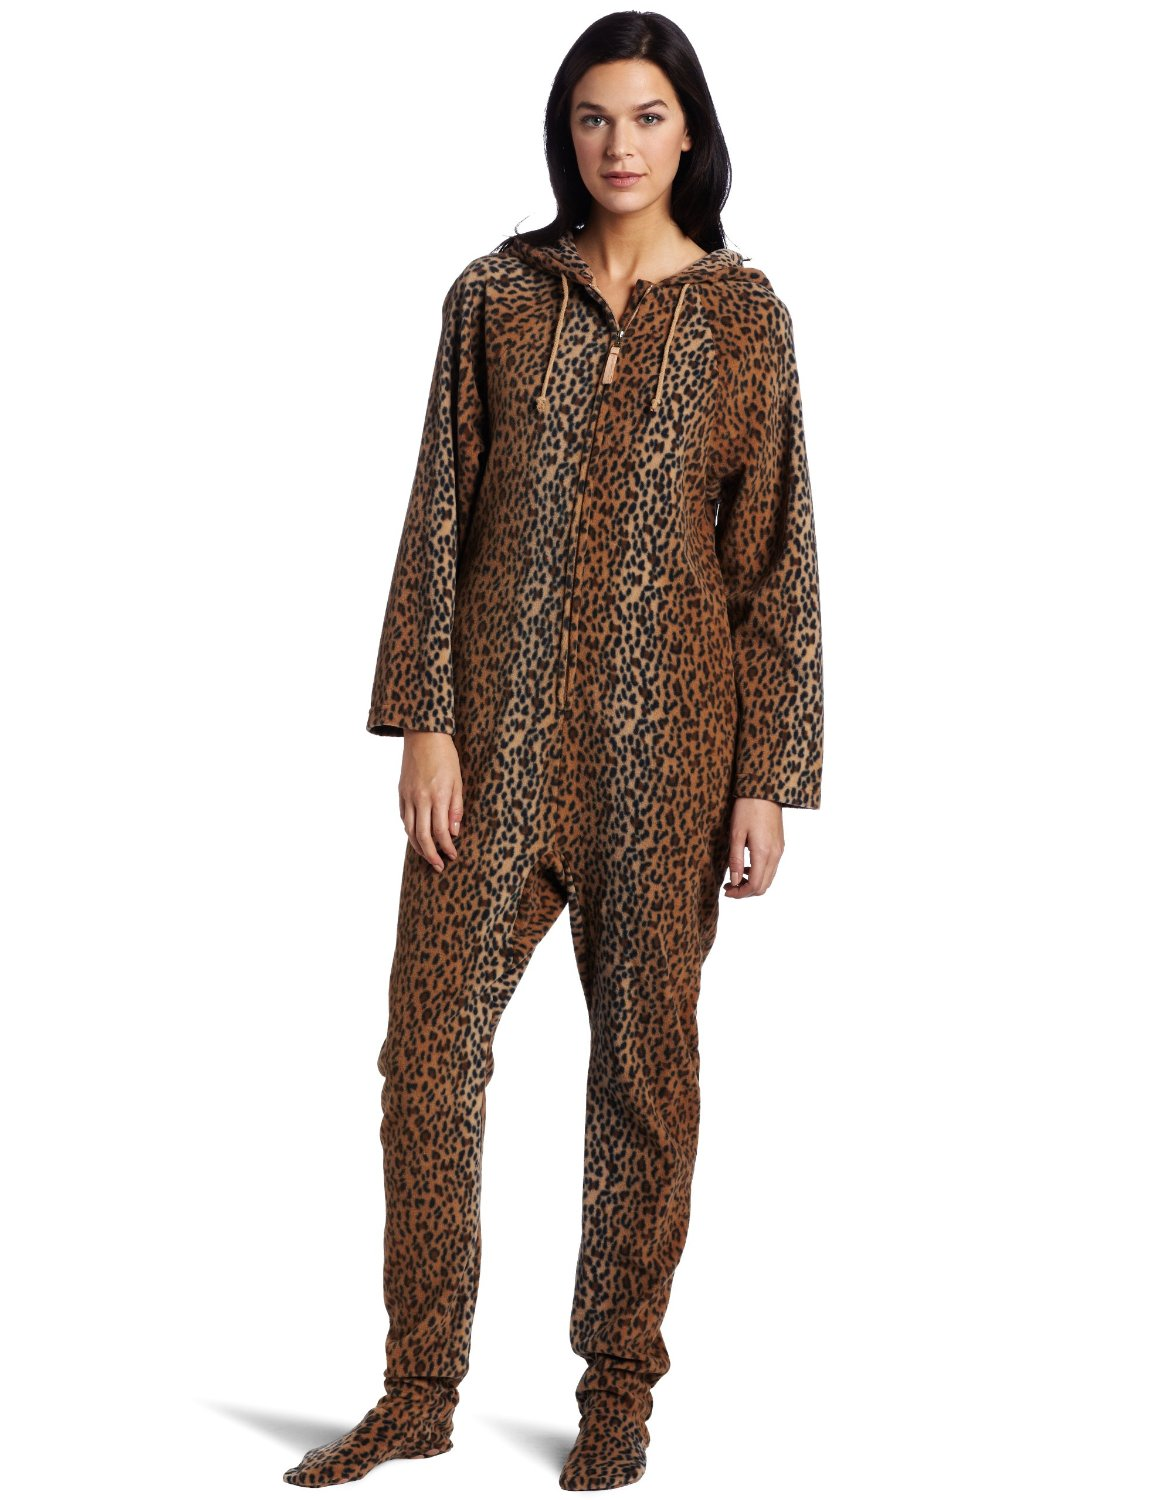 Women's onesie pajamas allow you to recreate this experience even more accurately. Onesie pajamas are just how you remember: cozy pajamas that are all one piece, sometimes even including a hood and enclosed feet.